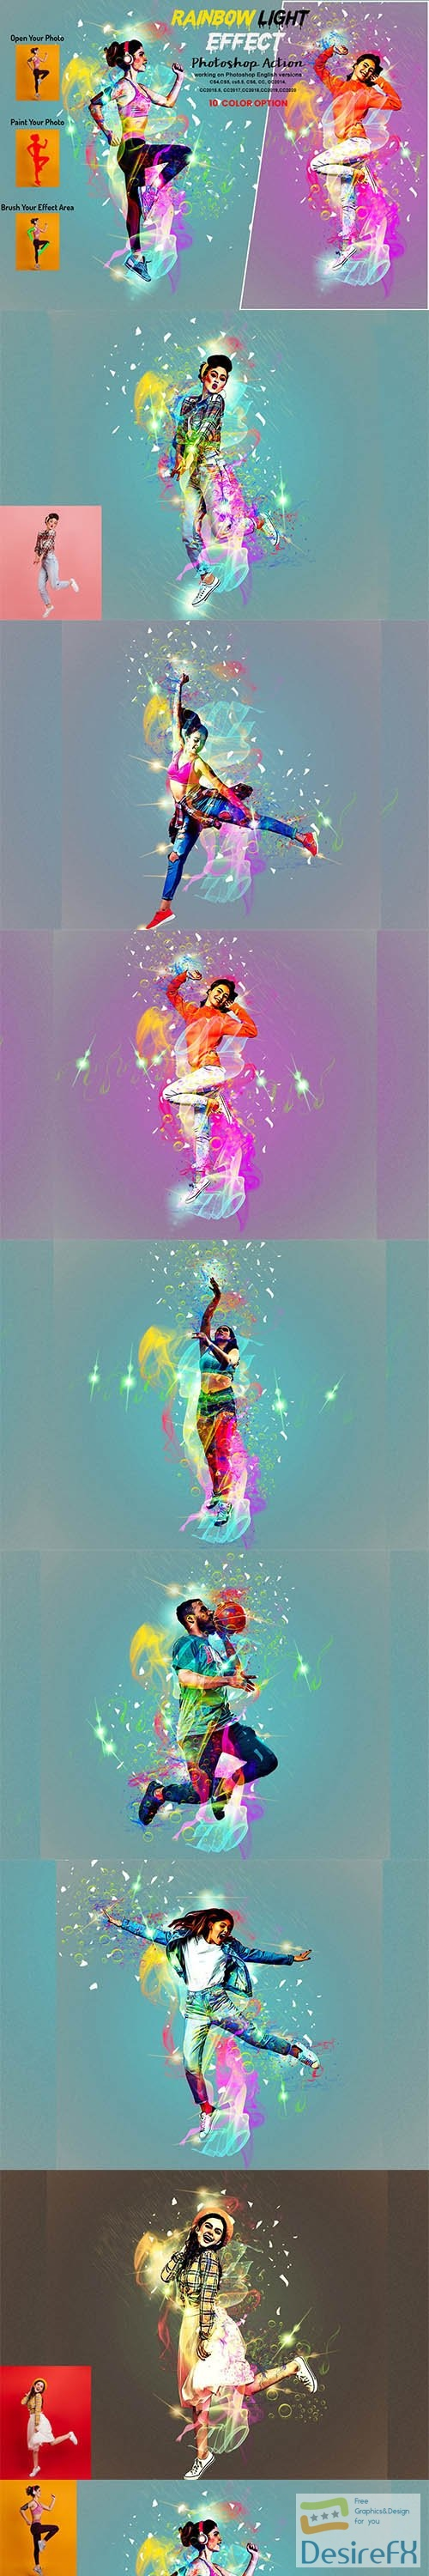 CreativeMarket - Rainbow Light Effect PS Action 5940257